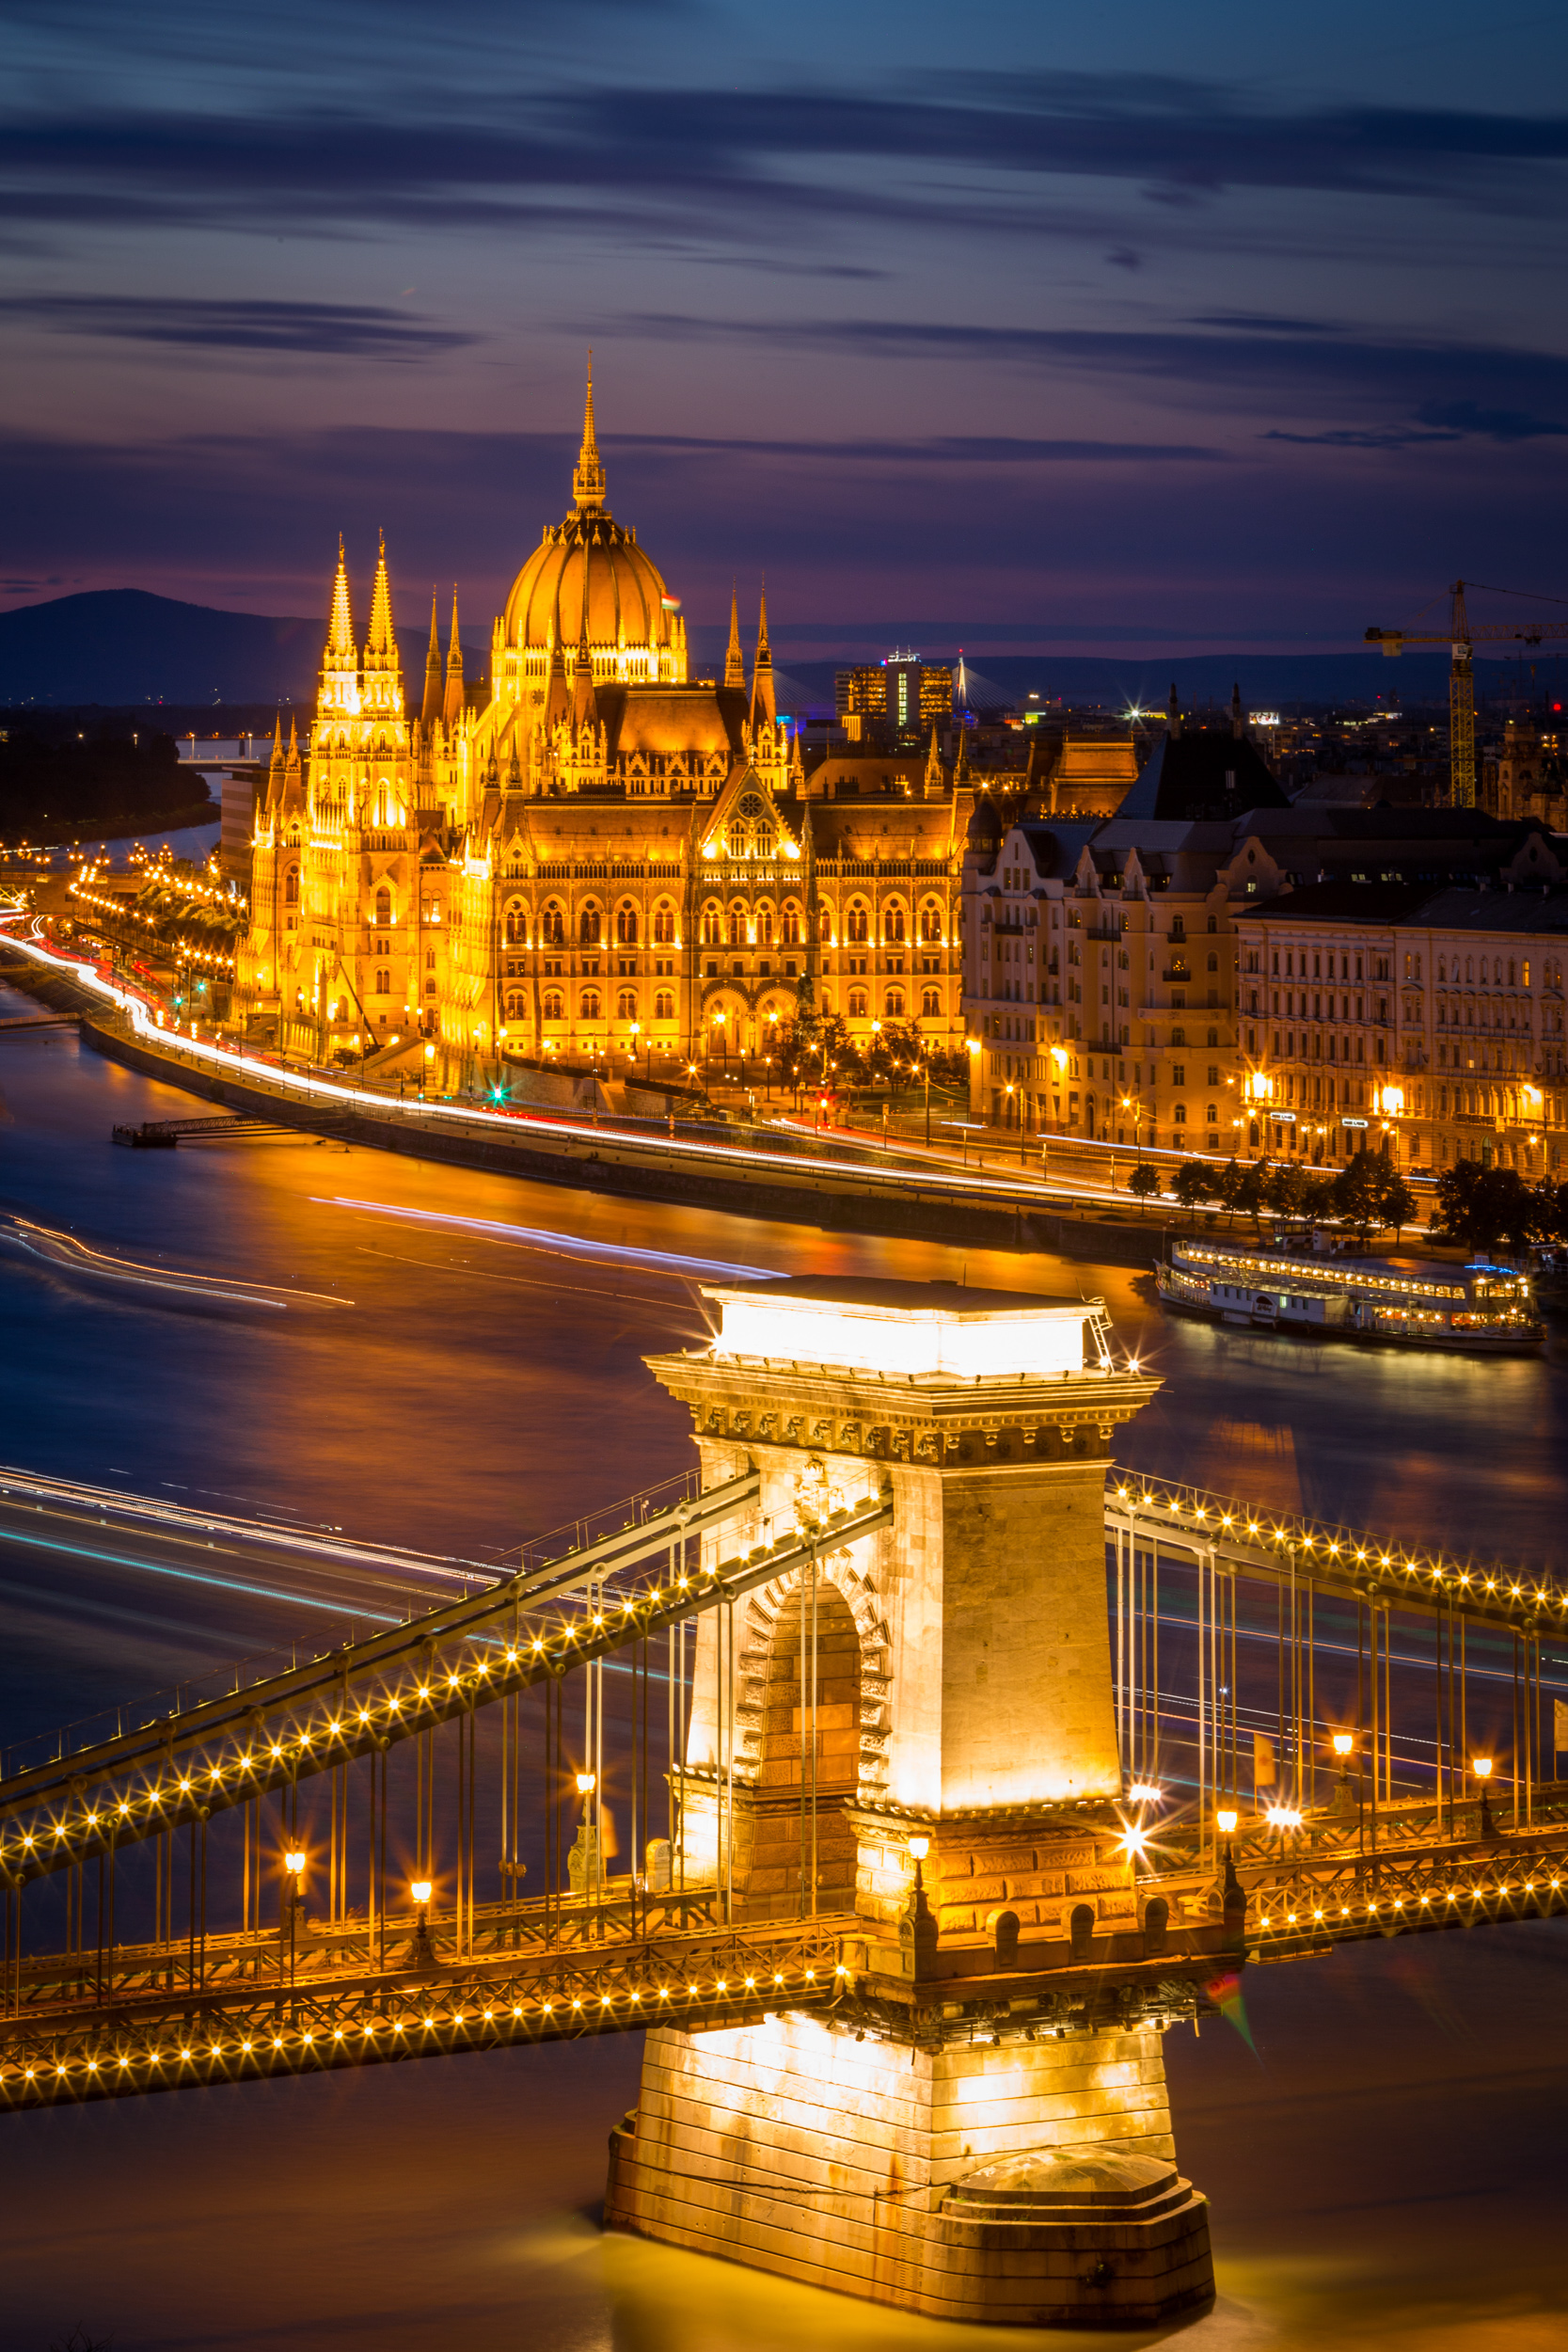 Chain Bridge and Hungarian Parliament Building from Buda Castle, ISO100, 130mm, f/25, 96sec